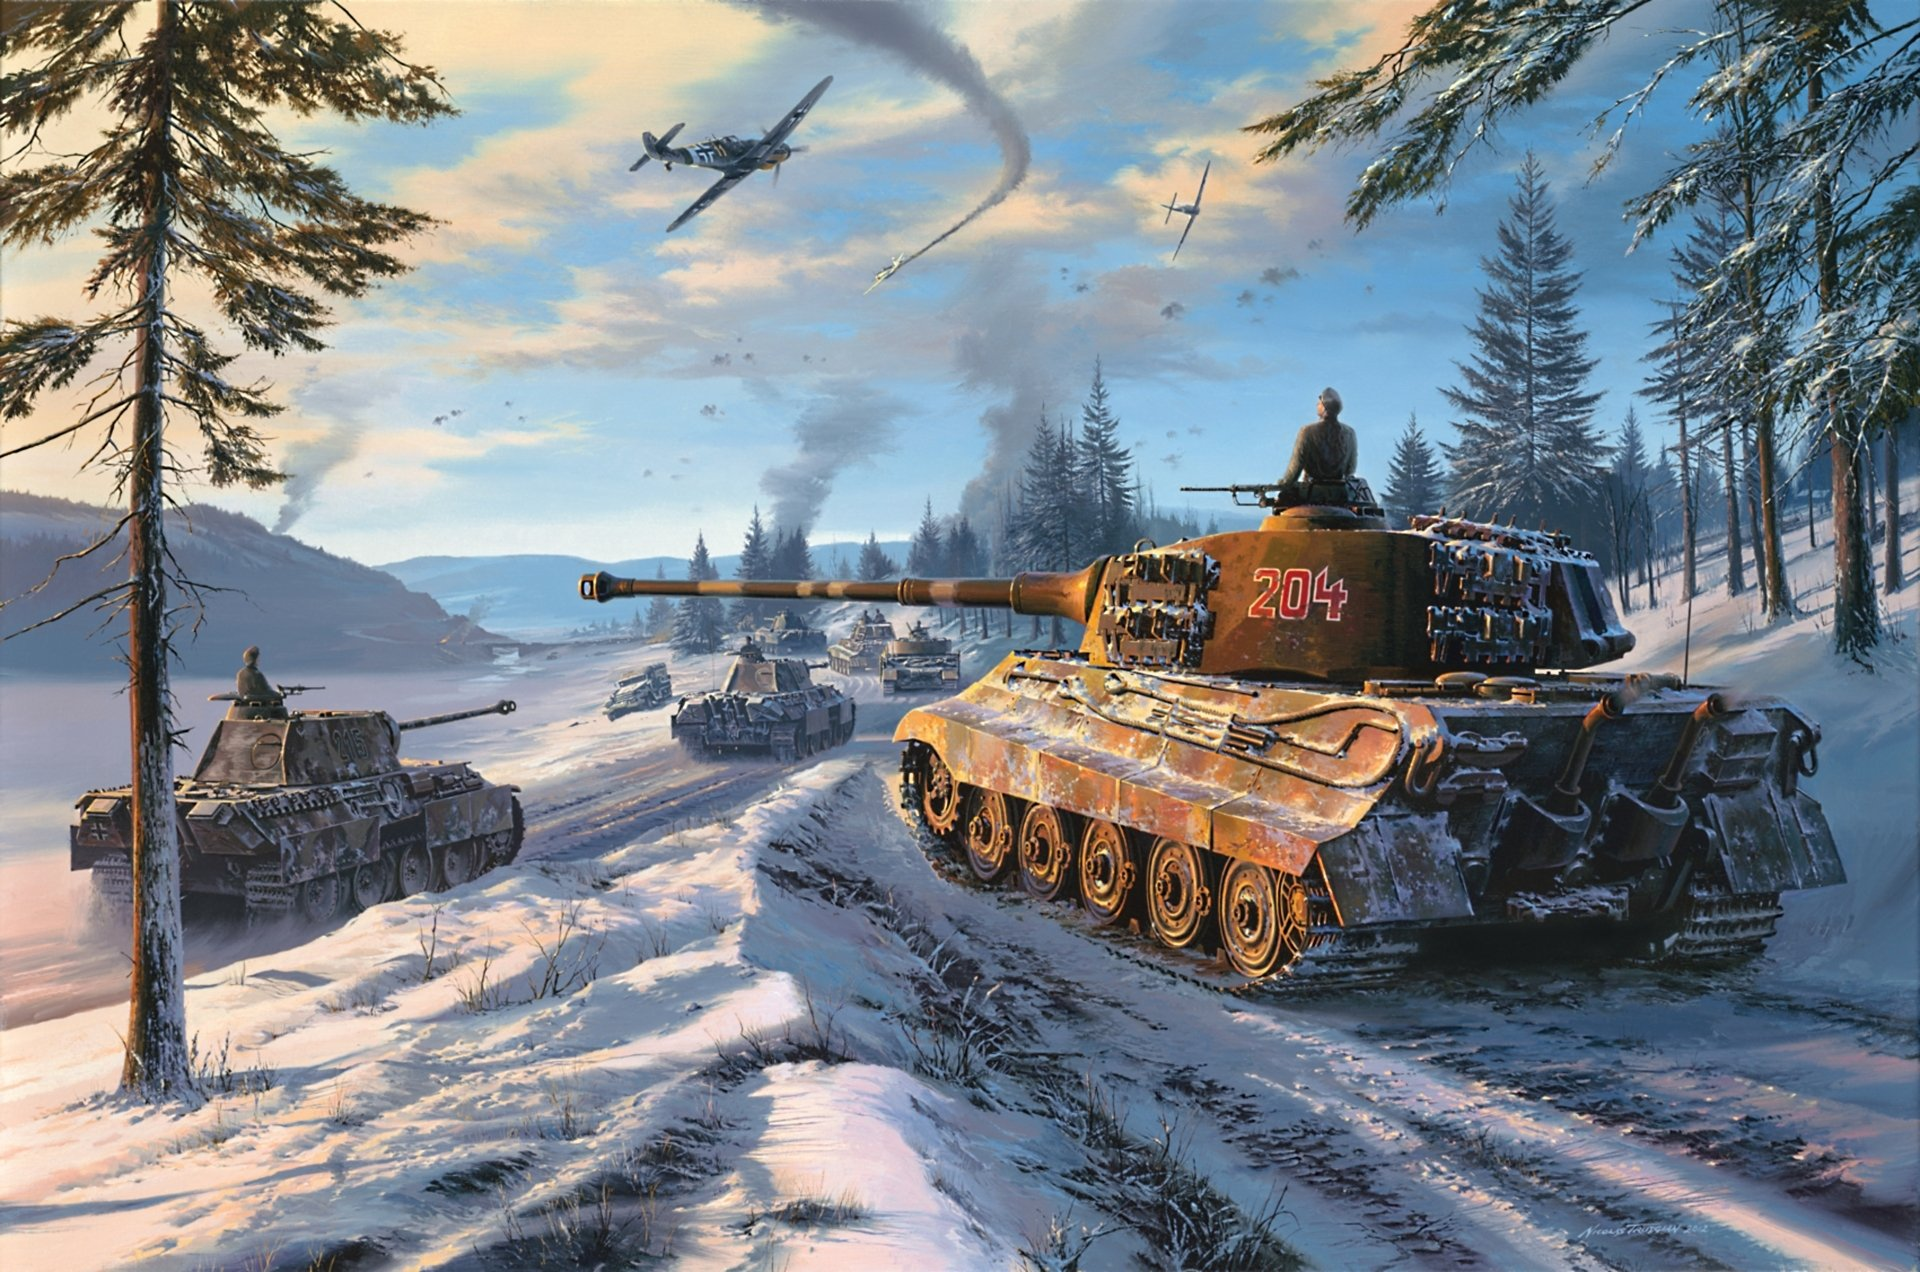 company of heroes maps with War Thunder Battle Mmo  Bat Flight Simulator Military  56 on Tigerpanther Skins Pack together with File  44 Magnum Side Render HQ moreover The Lost Mines Of Phandelver 812014 together with Entering The Realm Of Moba Games With Blizzards Heroes Of The Storm moreover .